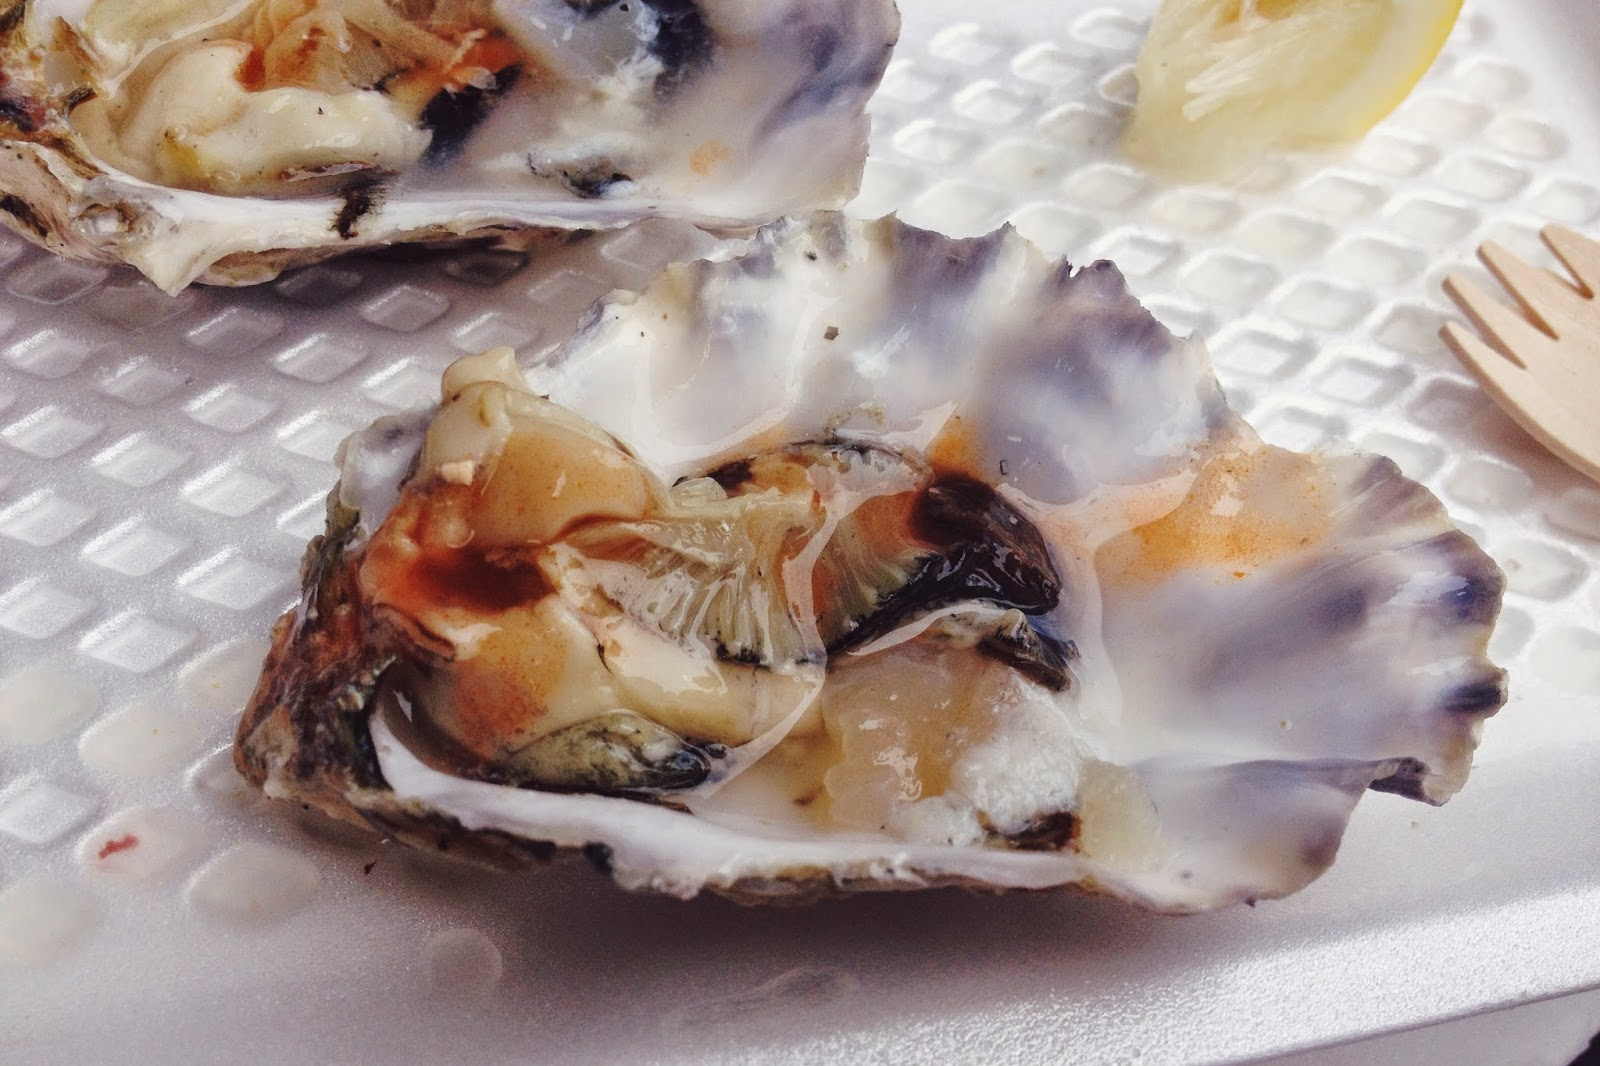 Dorset Seafood Festival, food blog, lifestyle blog, food festival, oysters